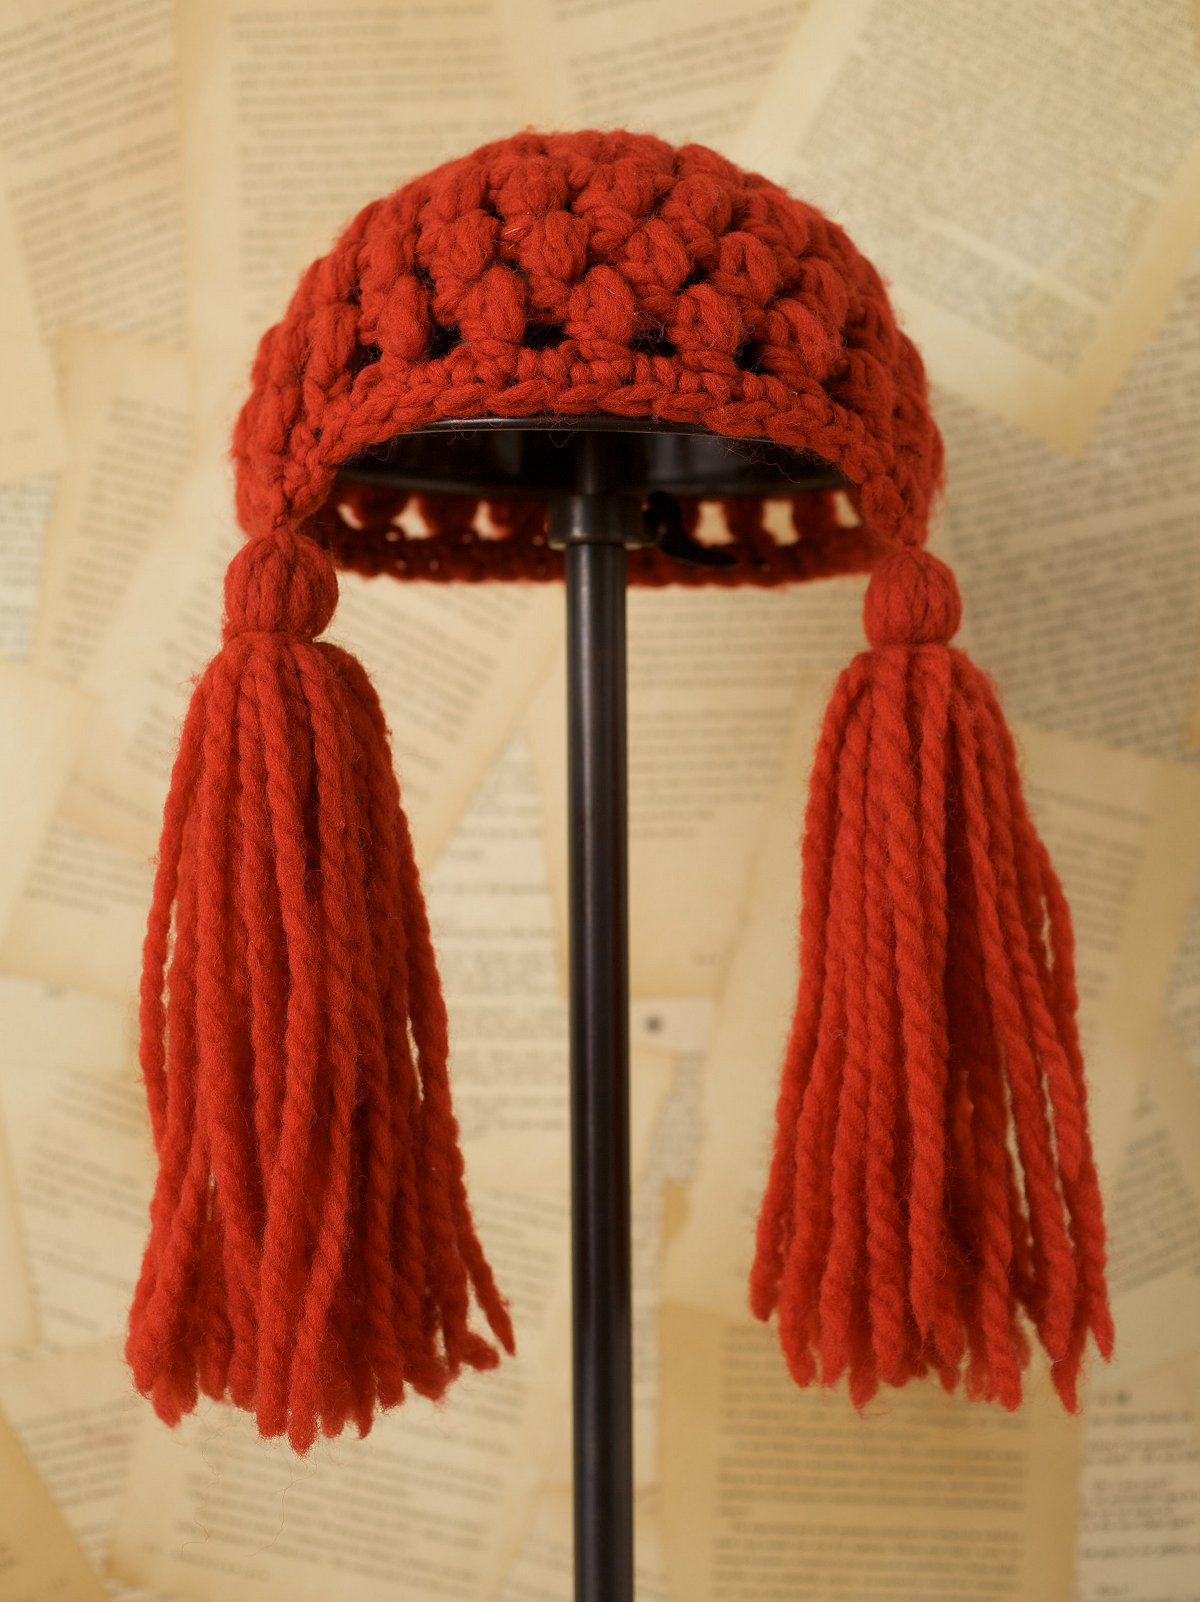 Vintage Red Yarn Hat